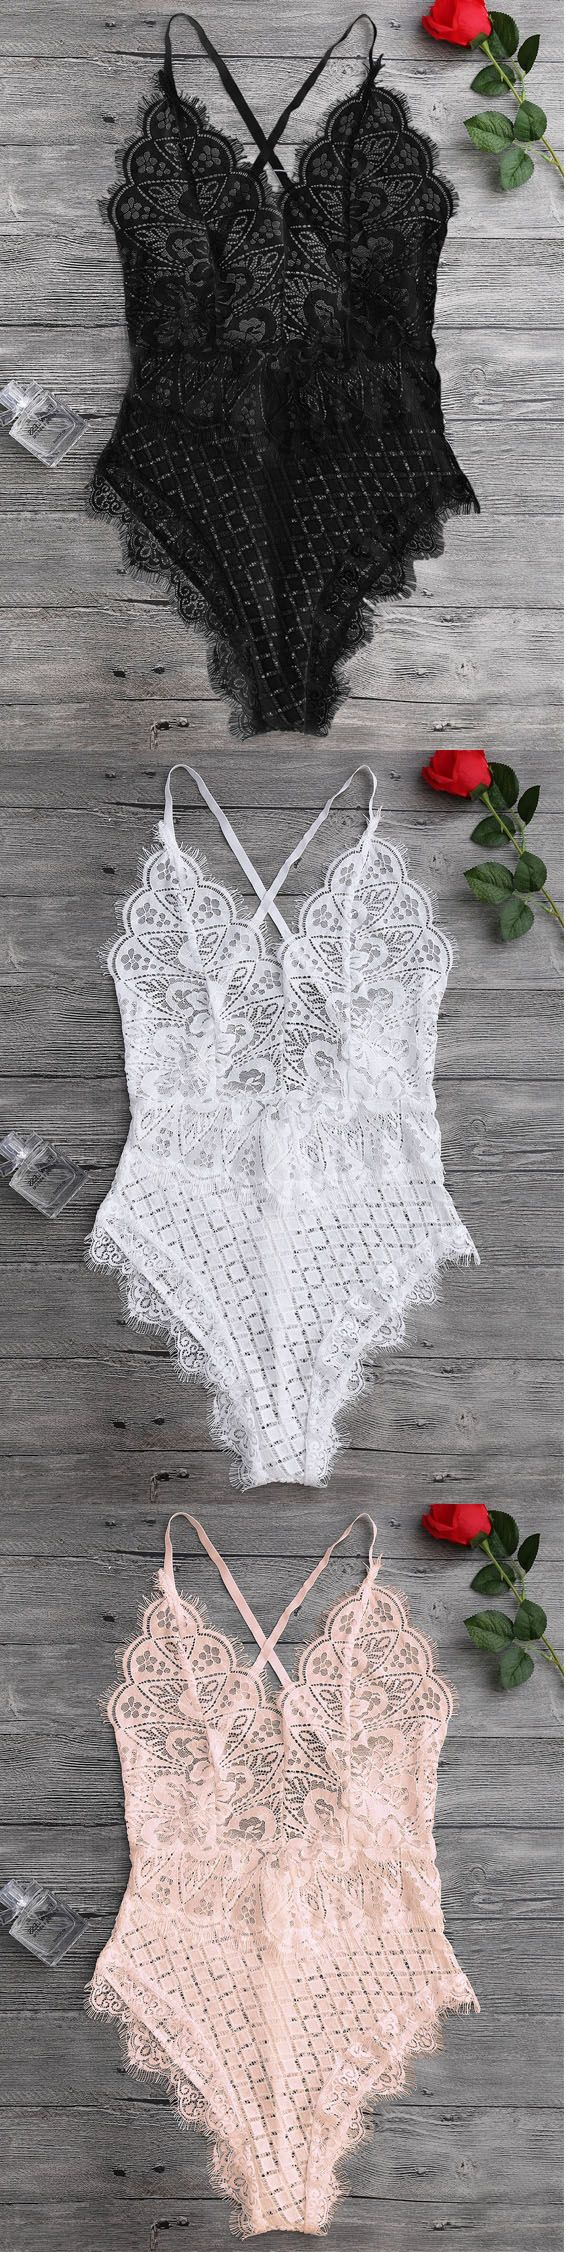 Up to 80% OFF! Scaolloped Sheer Eyelash Lace Teddy Bodysuit! #zaful #lingerie #intimates #underwear #underclothes #underclothing #undies #bra #victoriasecret #lingerieseductive #lingeriesetl #ingeries #lingerieclassy #intimatesapparel #intimatesphotograph